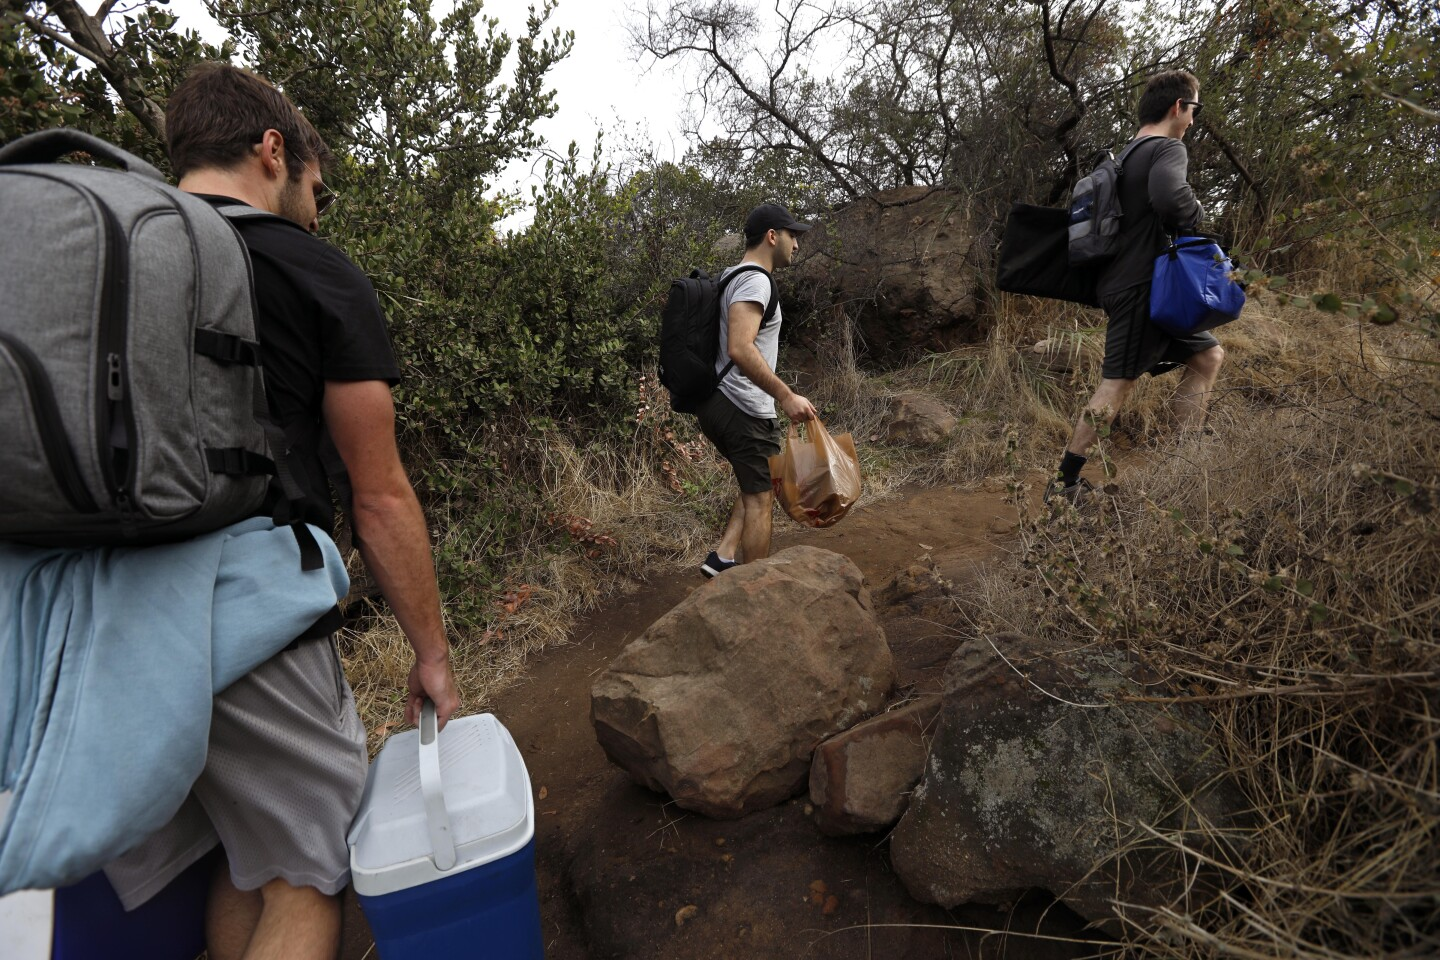 PACIFIC PALISADES, CA - NOVEMBER 30, 2019 - Jack Petros, 28, from left, Dylan Skolnik, 24, and David Weber, 27, members of the Summit Sippers, hike along the Liones Trail in Pacific Palisades on November 30, 2019. Summit Sippers set up impromptu little bars at random view spots on L.A. hiking trails. They wear bow ties, suspenders and one wears a top hat. They are all avid hikers who enjoy the experience of hiking and than setting up their impromptu watering hole. The drinks are free and they won't even take tips. They are careful not to leave trash behind or block spots where hikers might like to take photos. They try and find picturesque sites along LA's hiking trails. (Genaro Molina / Los Angeles Times)